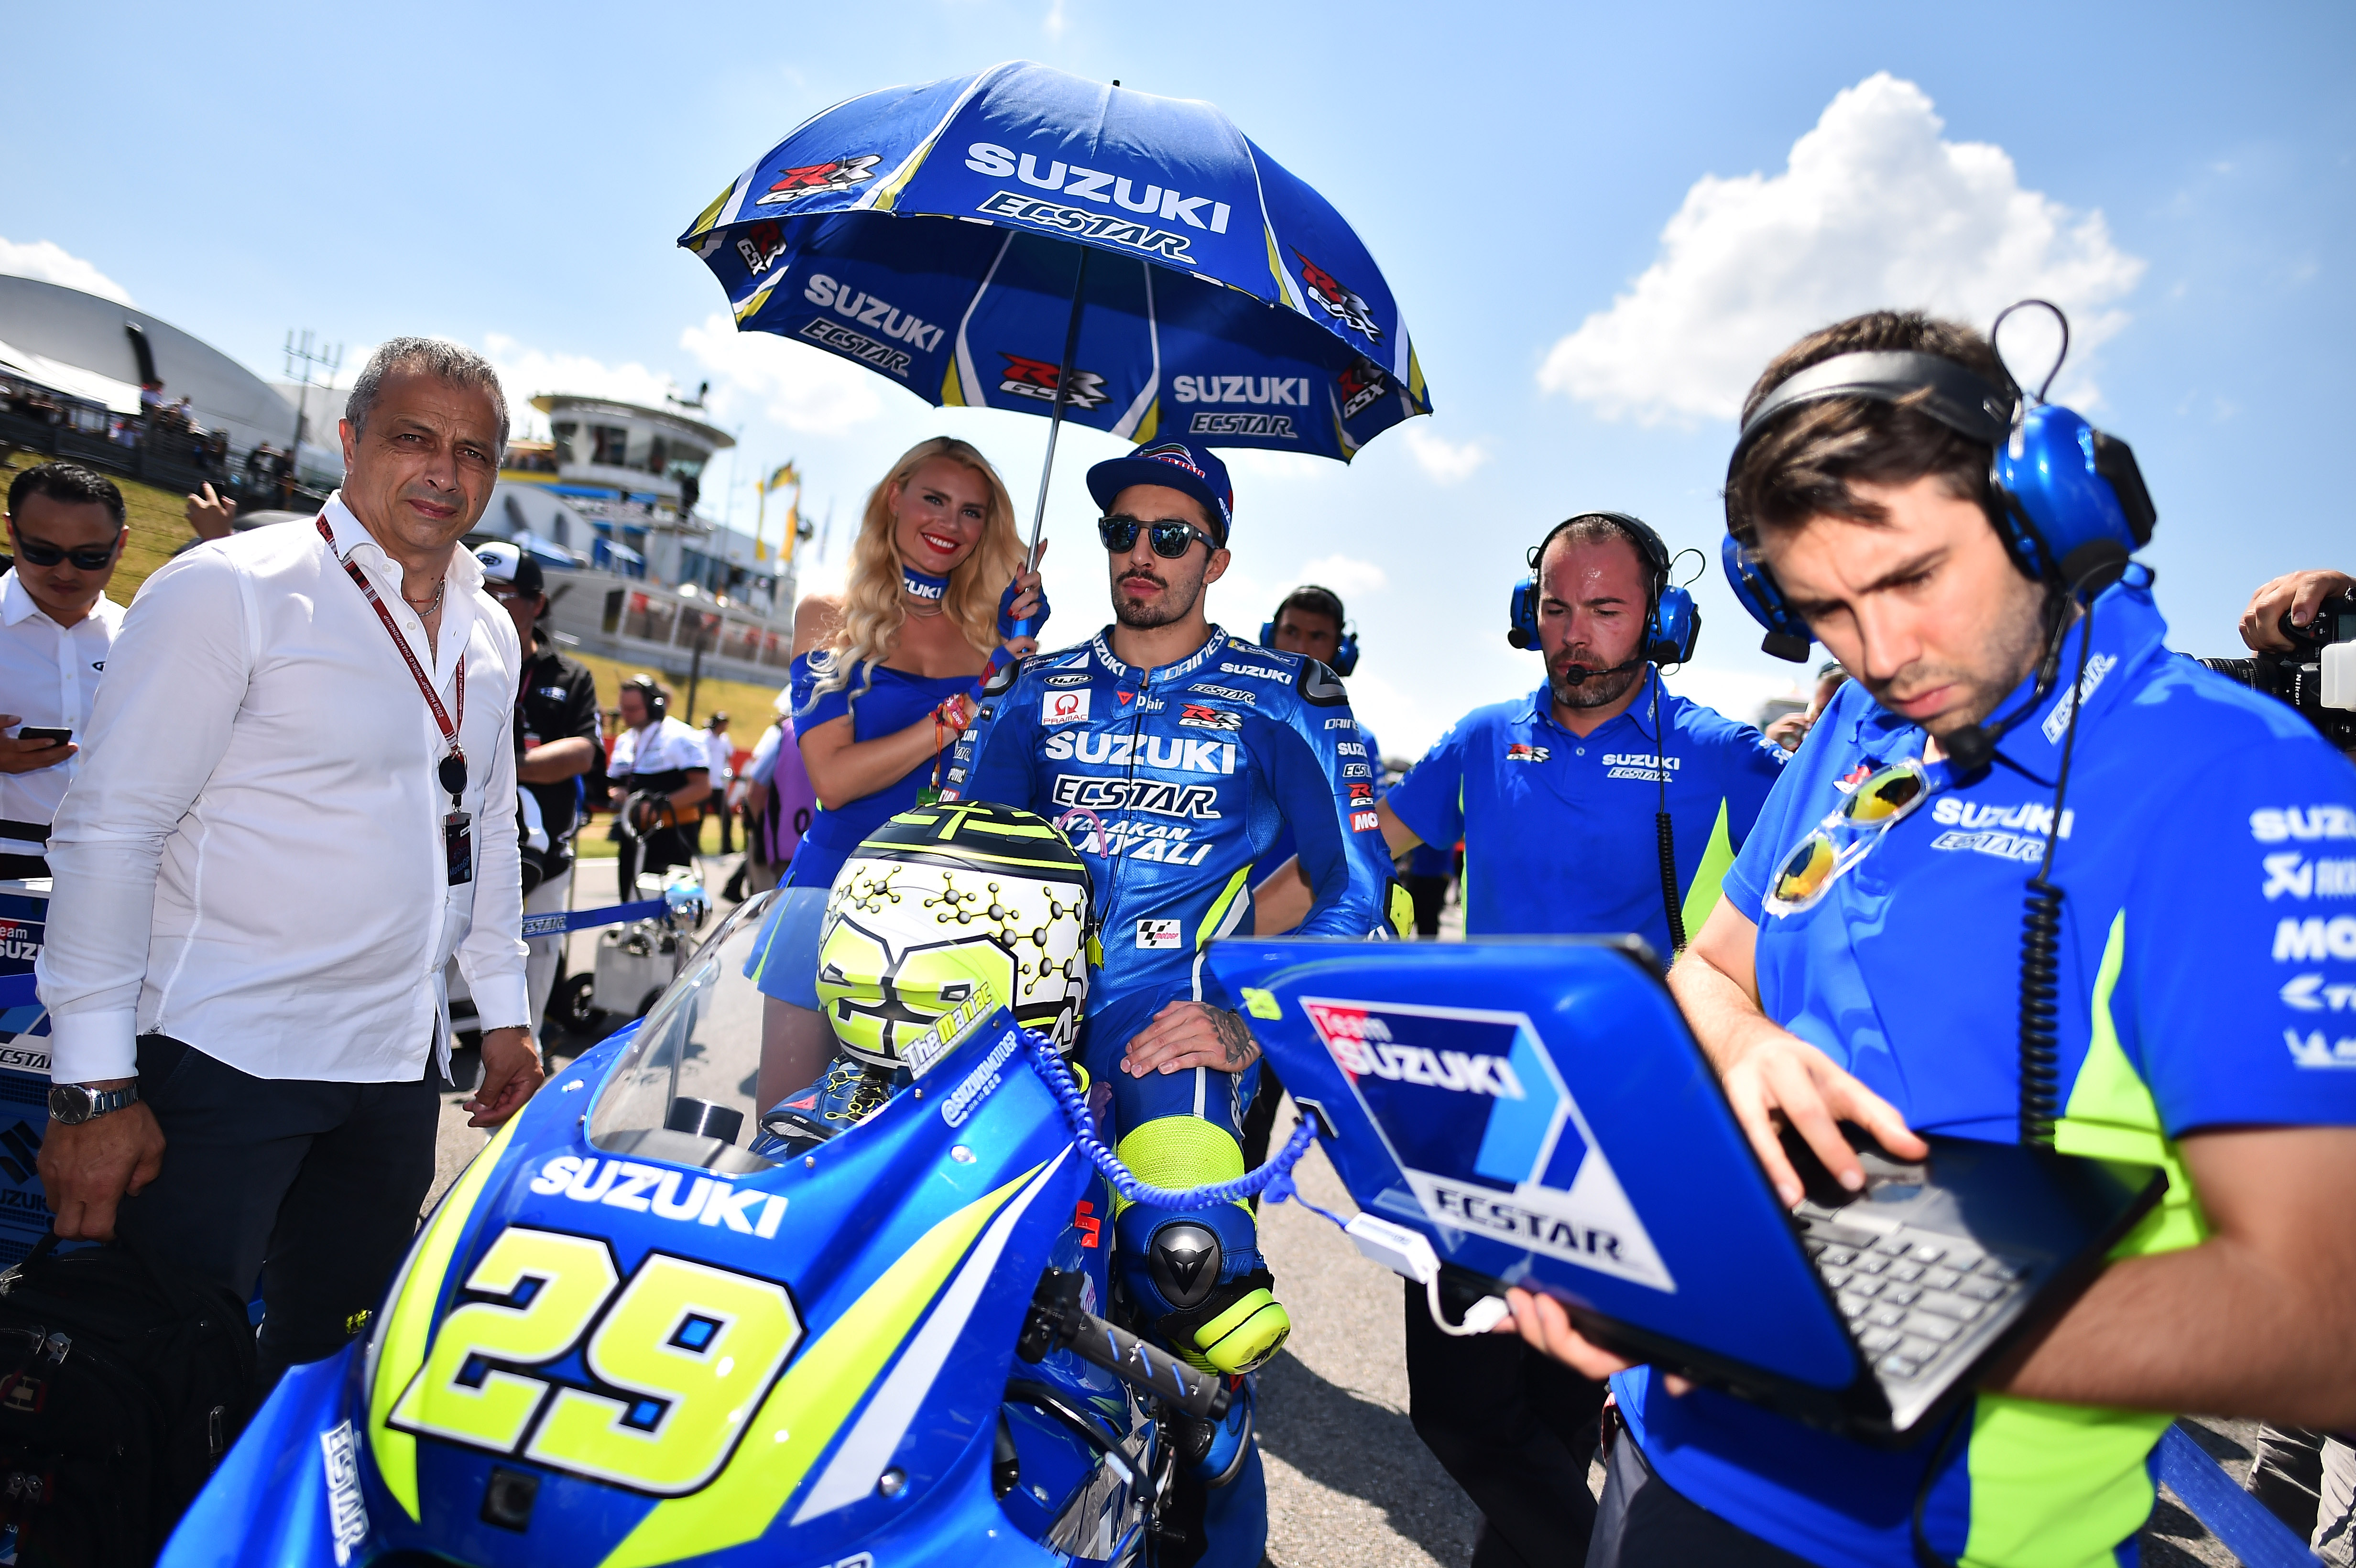 MOTOGP : THE MUSIC CHOICE OF THE RIDERS